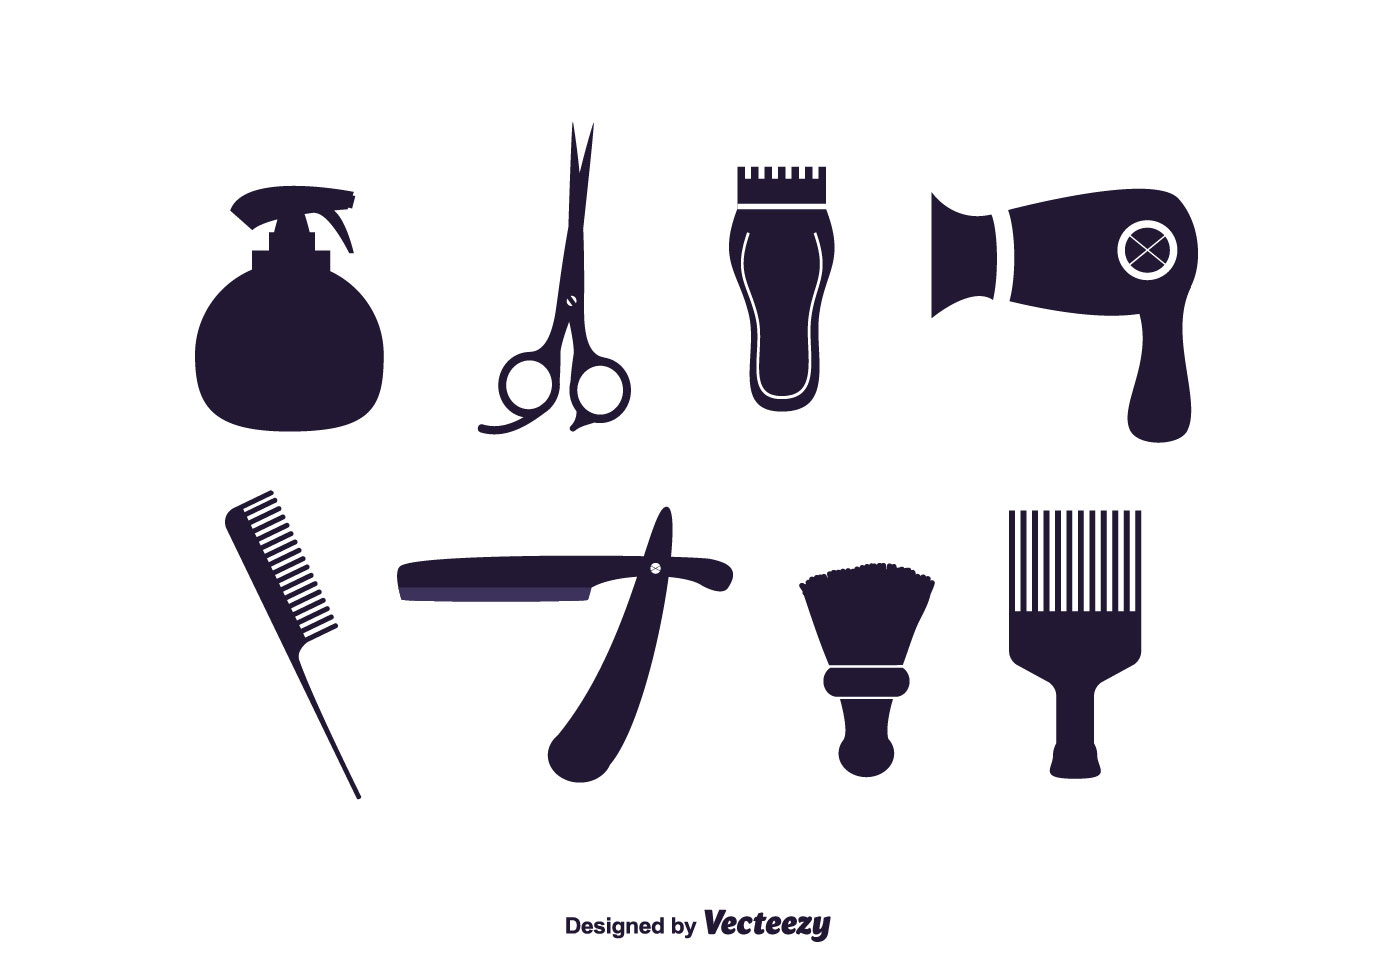 Barber Vector : Vector Set of Barber Tools - Download Free Vector Art, Stock Graphics ...